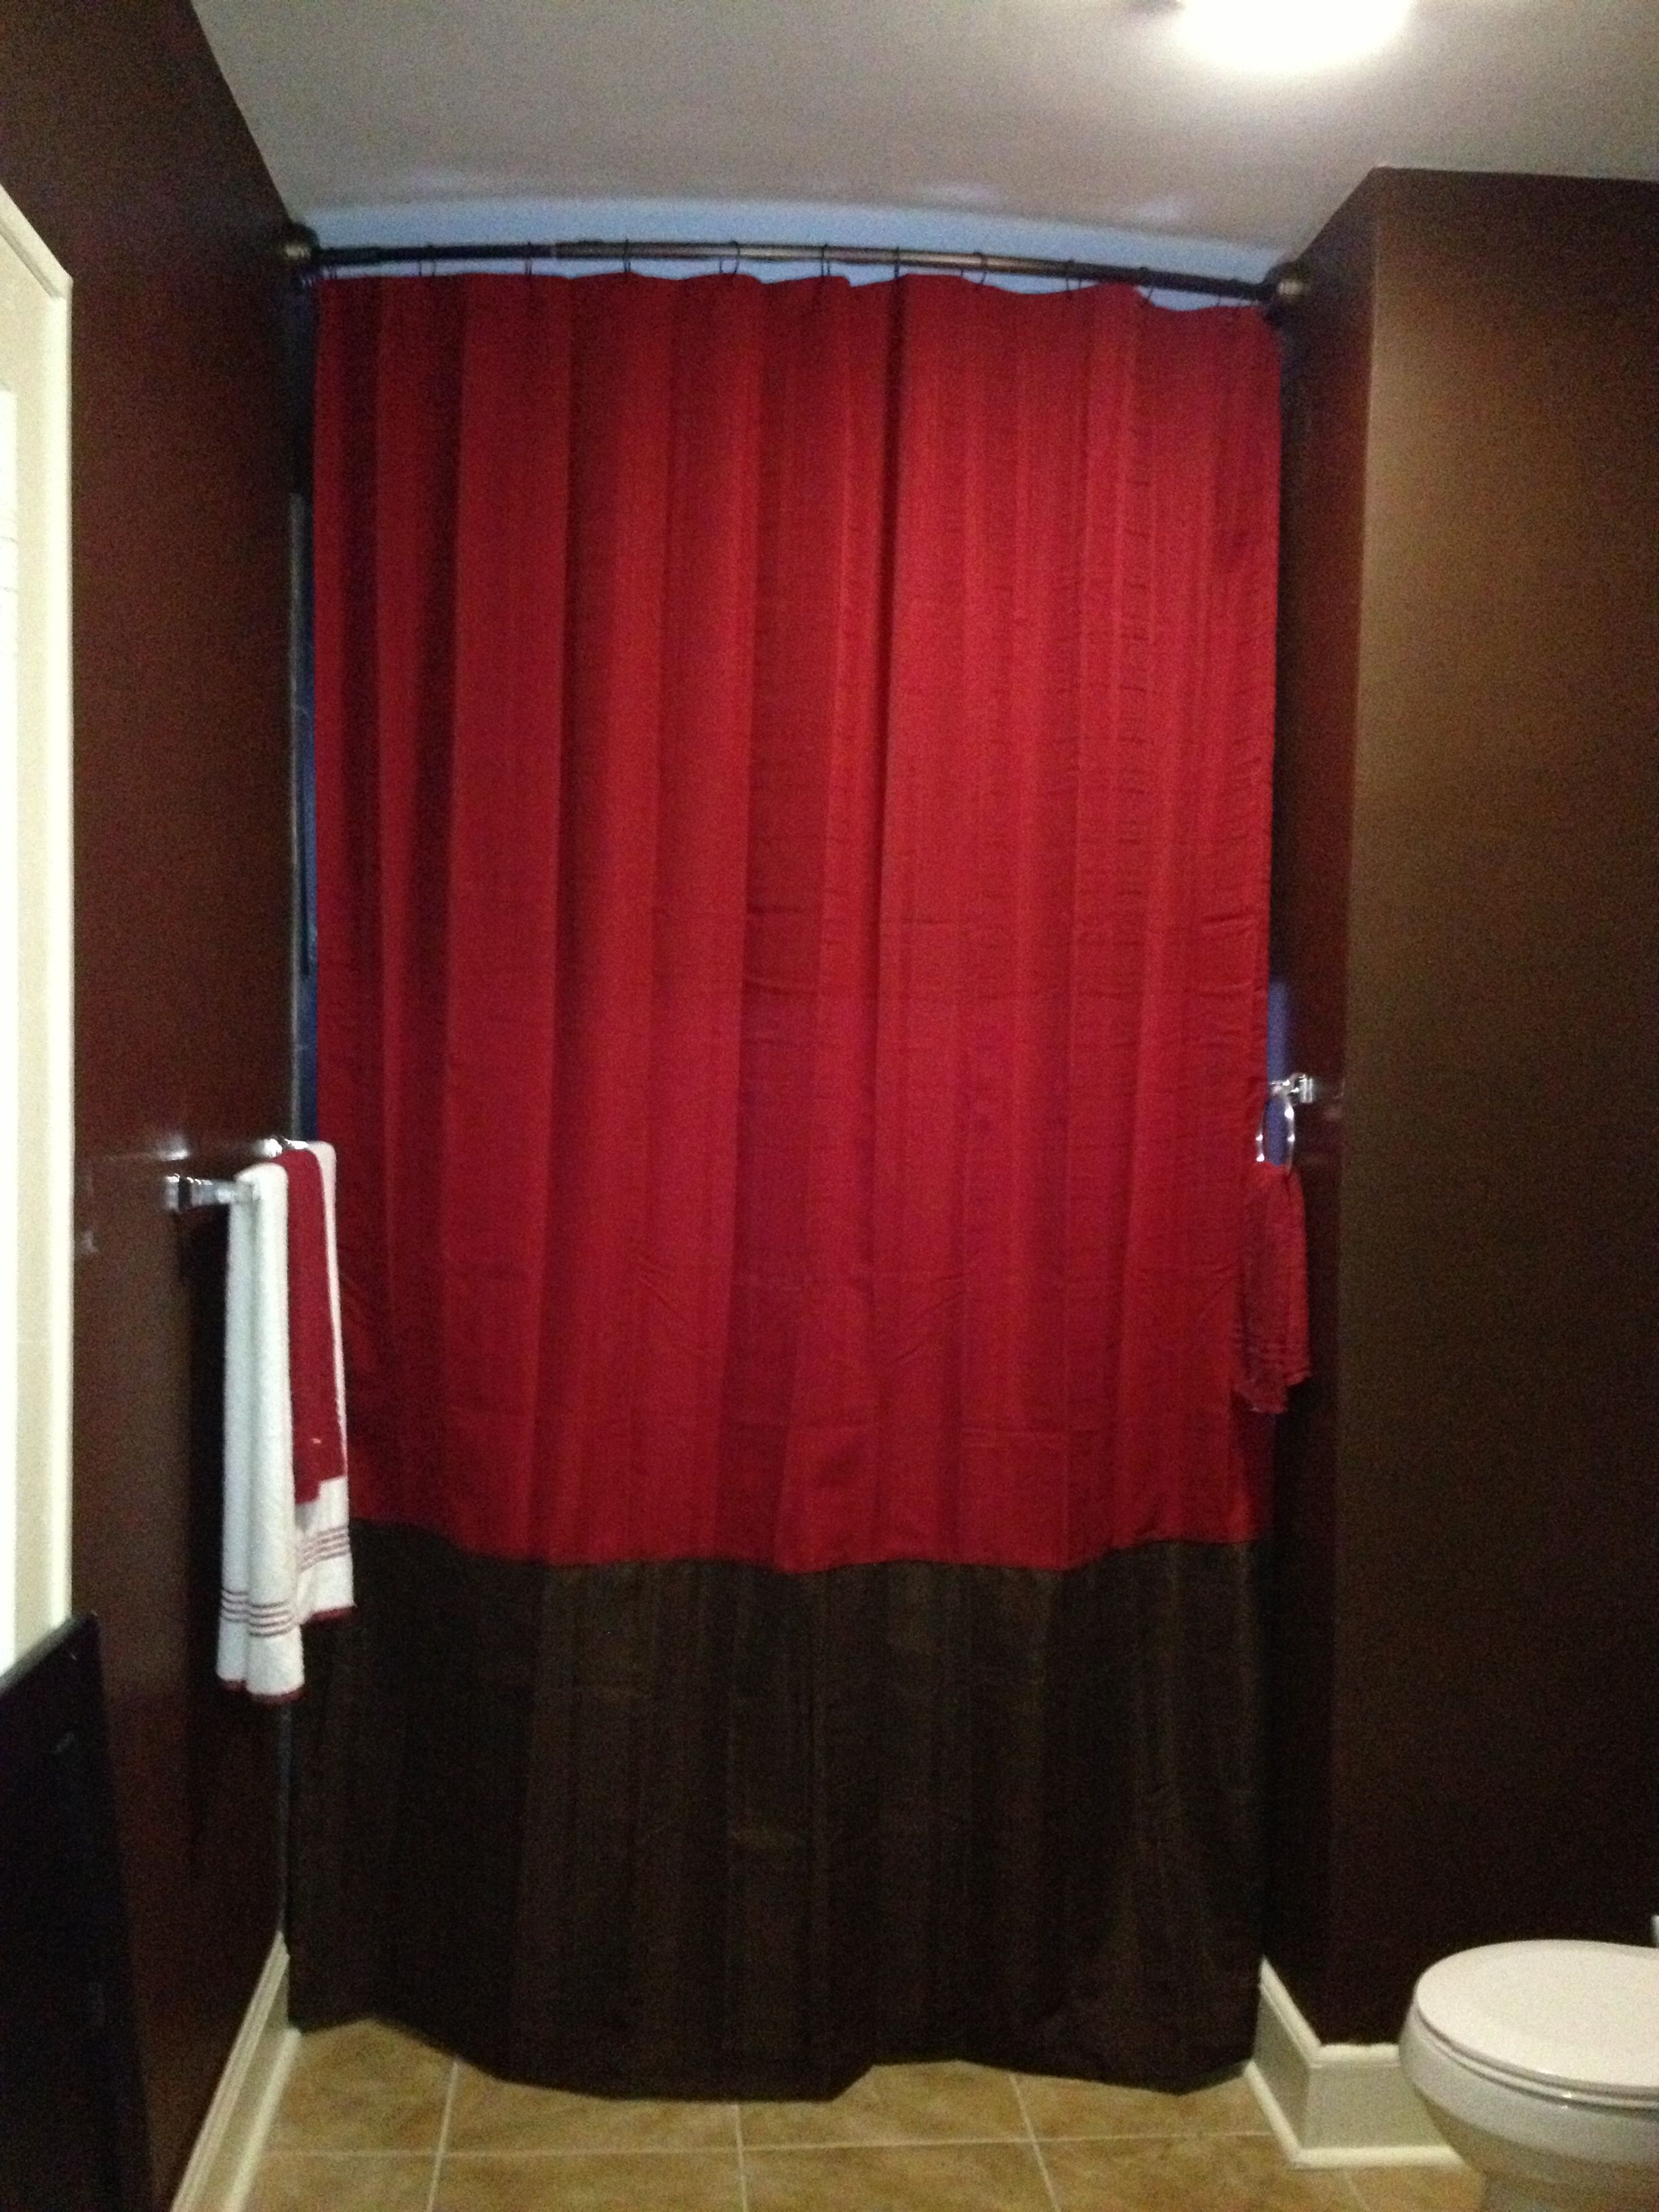 Chocolate brown and red bathroom sewed two shower curtains together